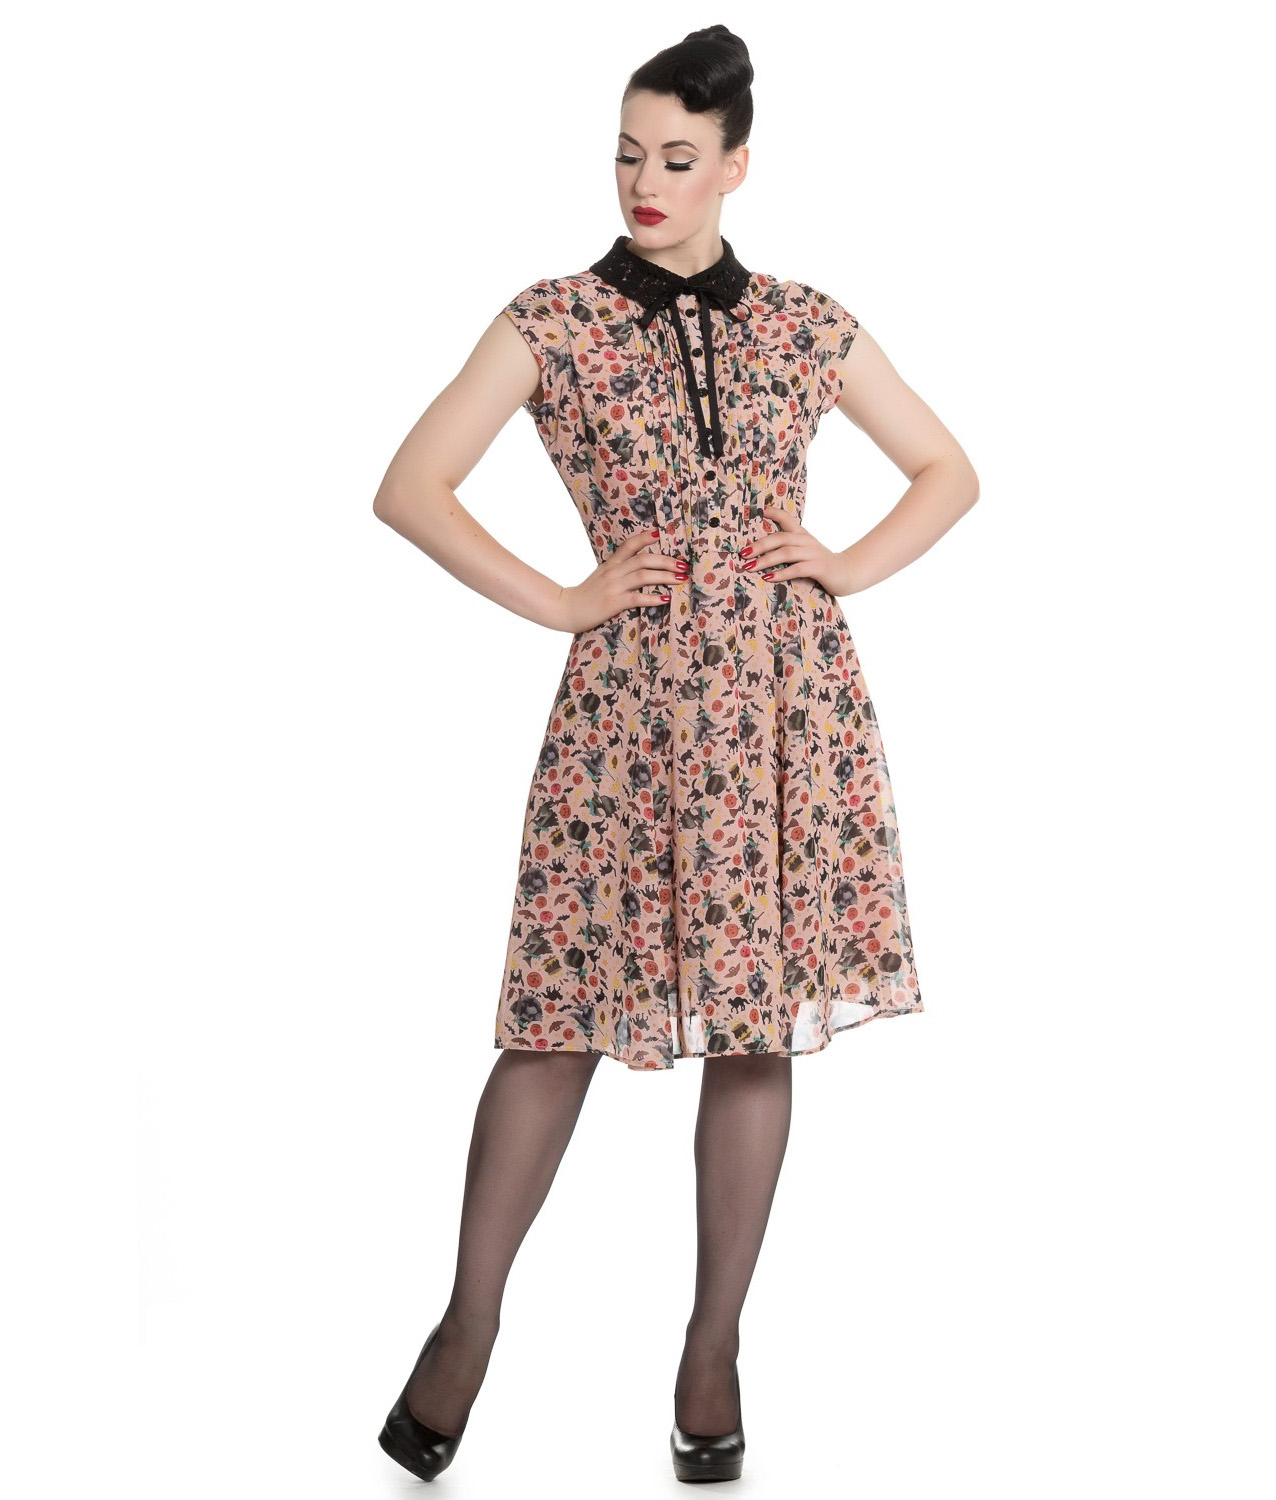 Hell-Bunny-Gothic-40s-50s-Beige-Dress-ZELDA-Witchy-Halloween-All-Sizes thumbnail 31